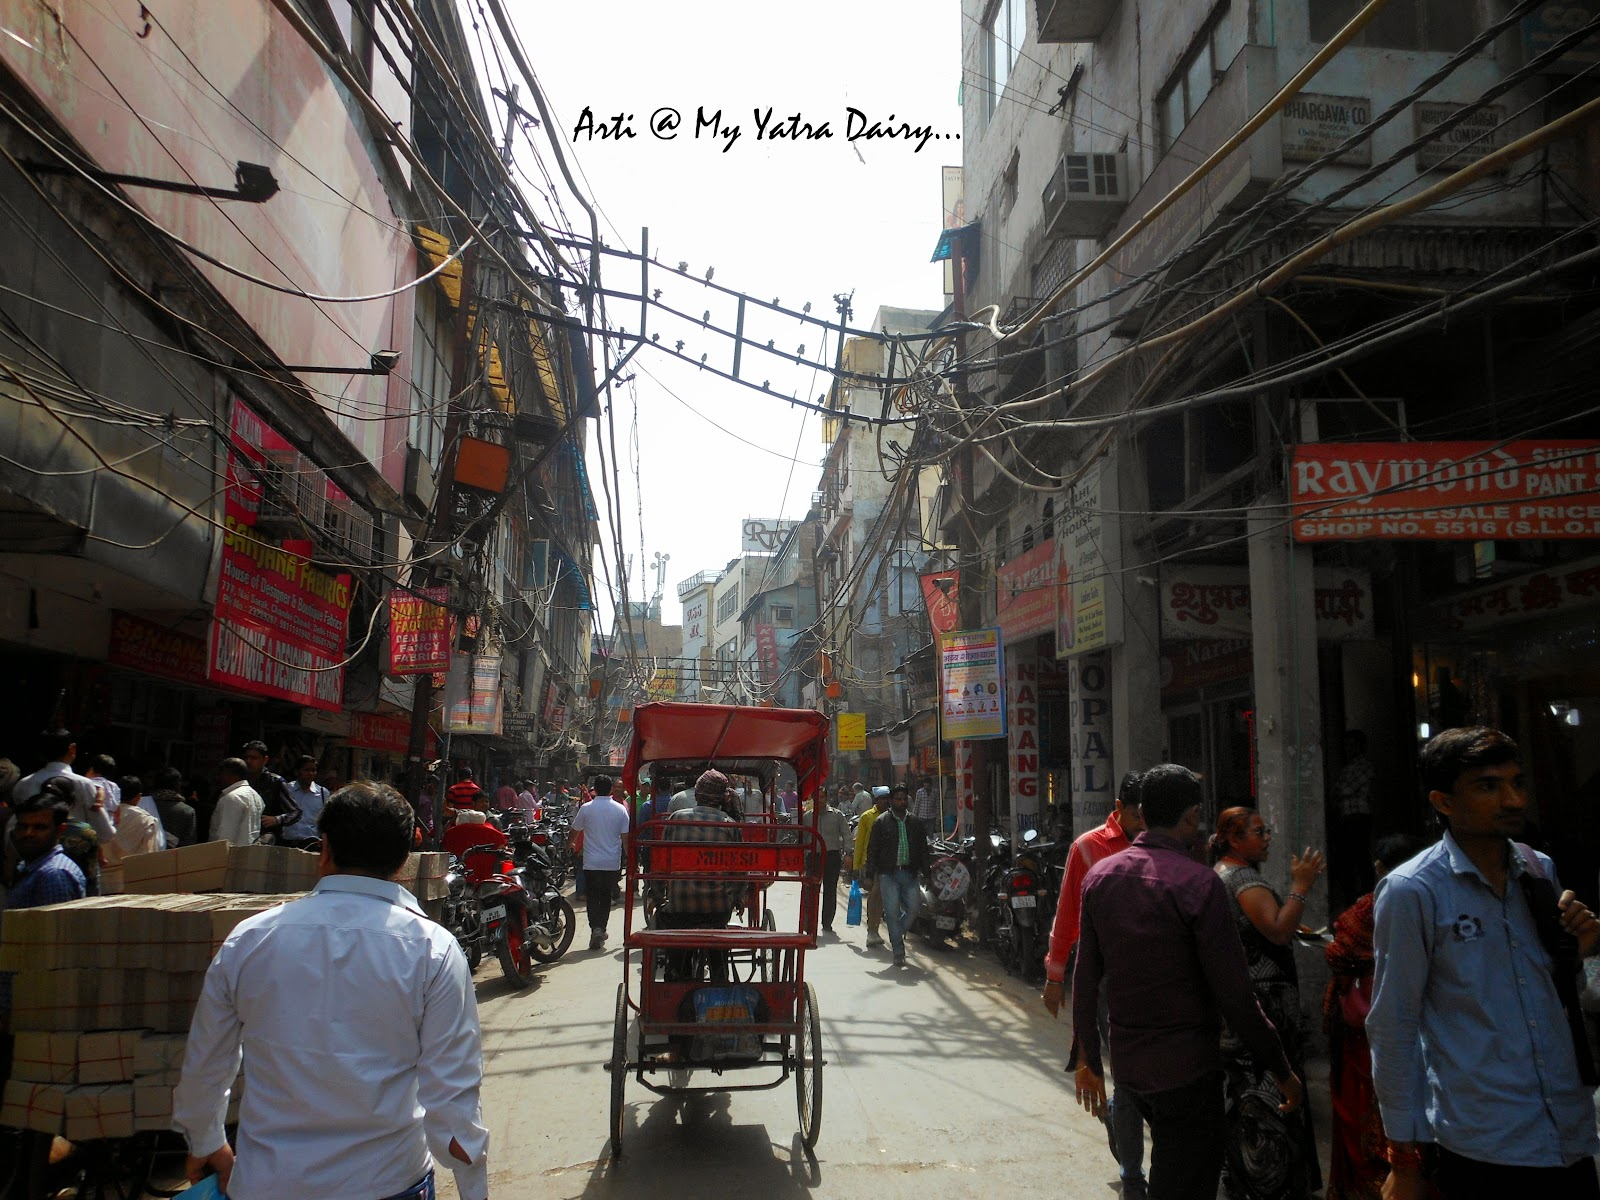 Narrow crowded streets of Chandni Chawk, Old Delhi